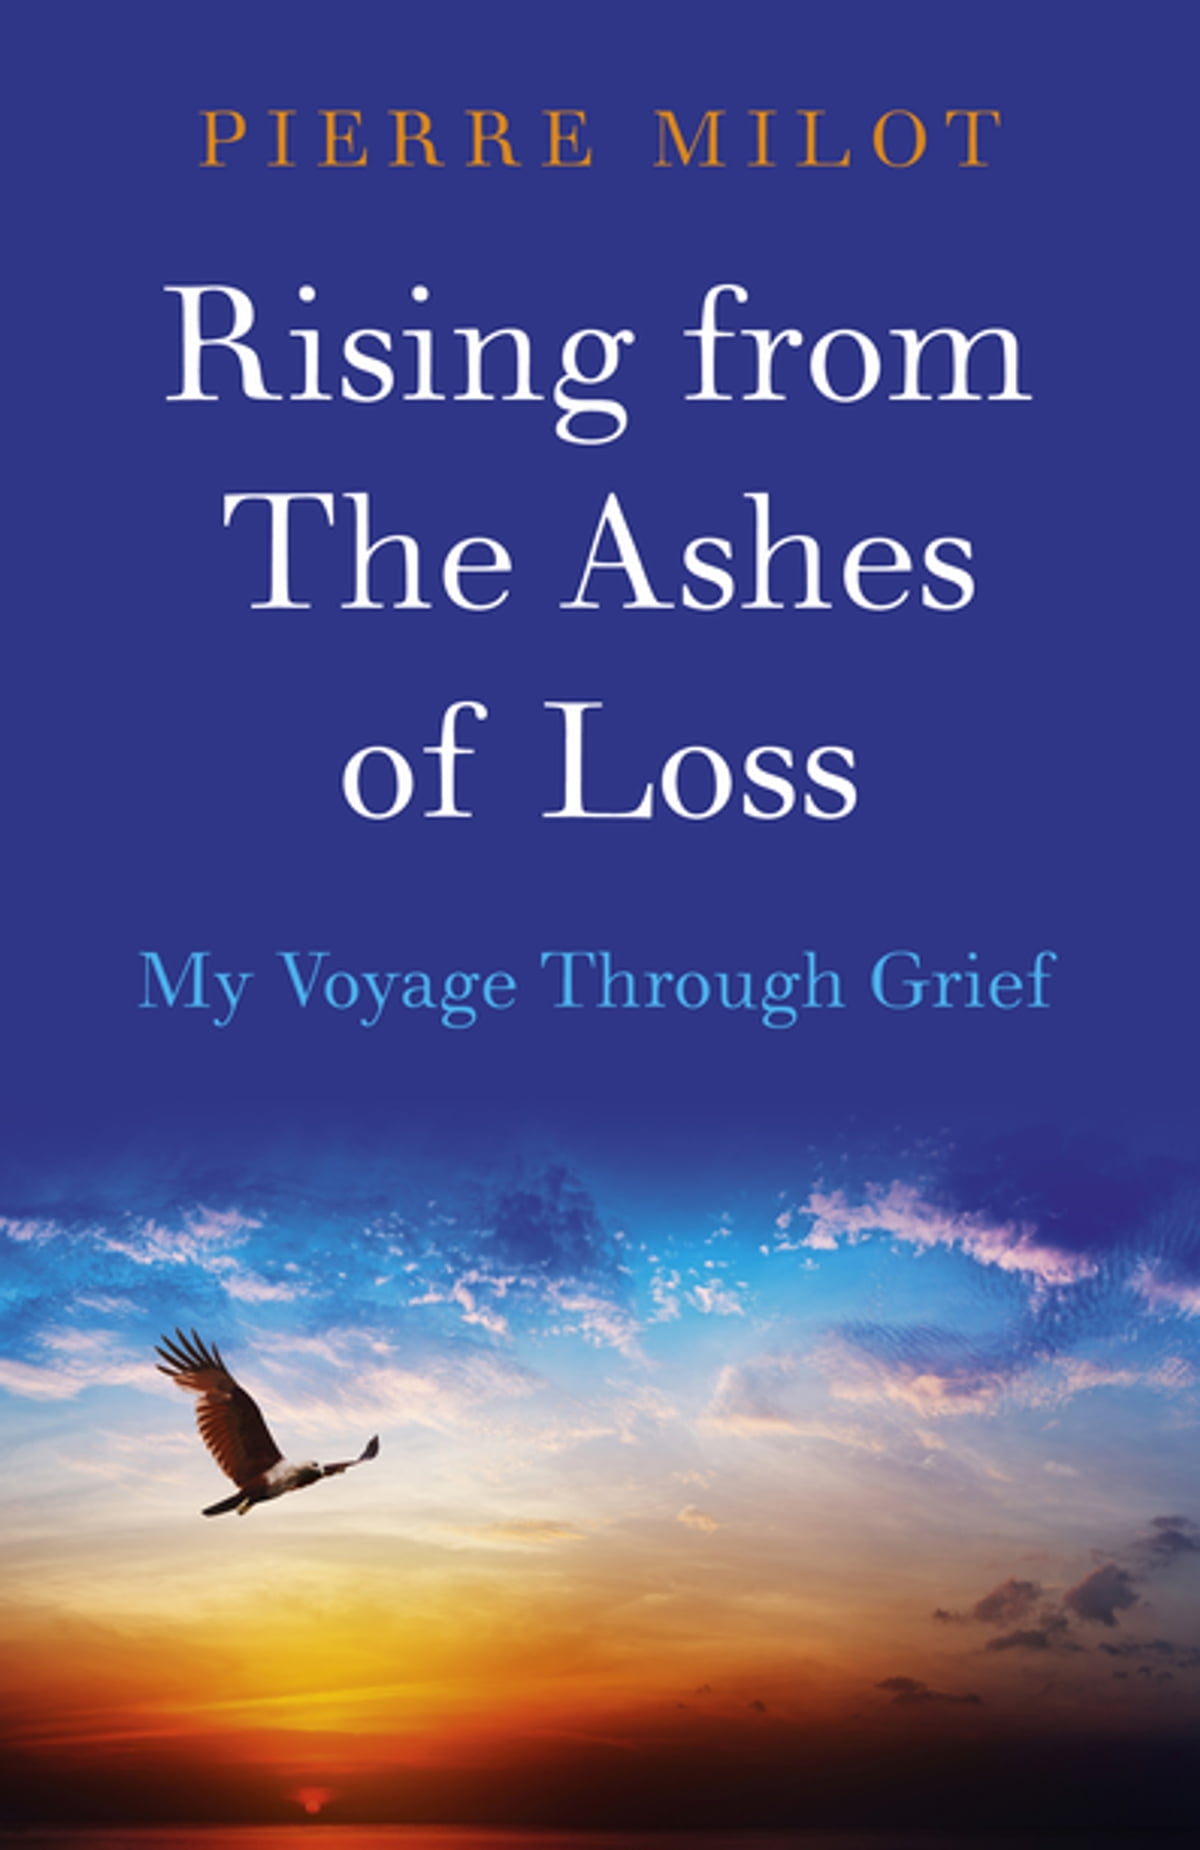 Rising from the ashes of loss ebook by pierre milot rising from the ashes of loss ebook by pierre milot 9781785351525 rakuten kobo fandeluxe Document